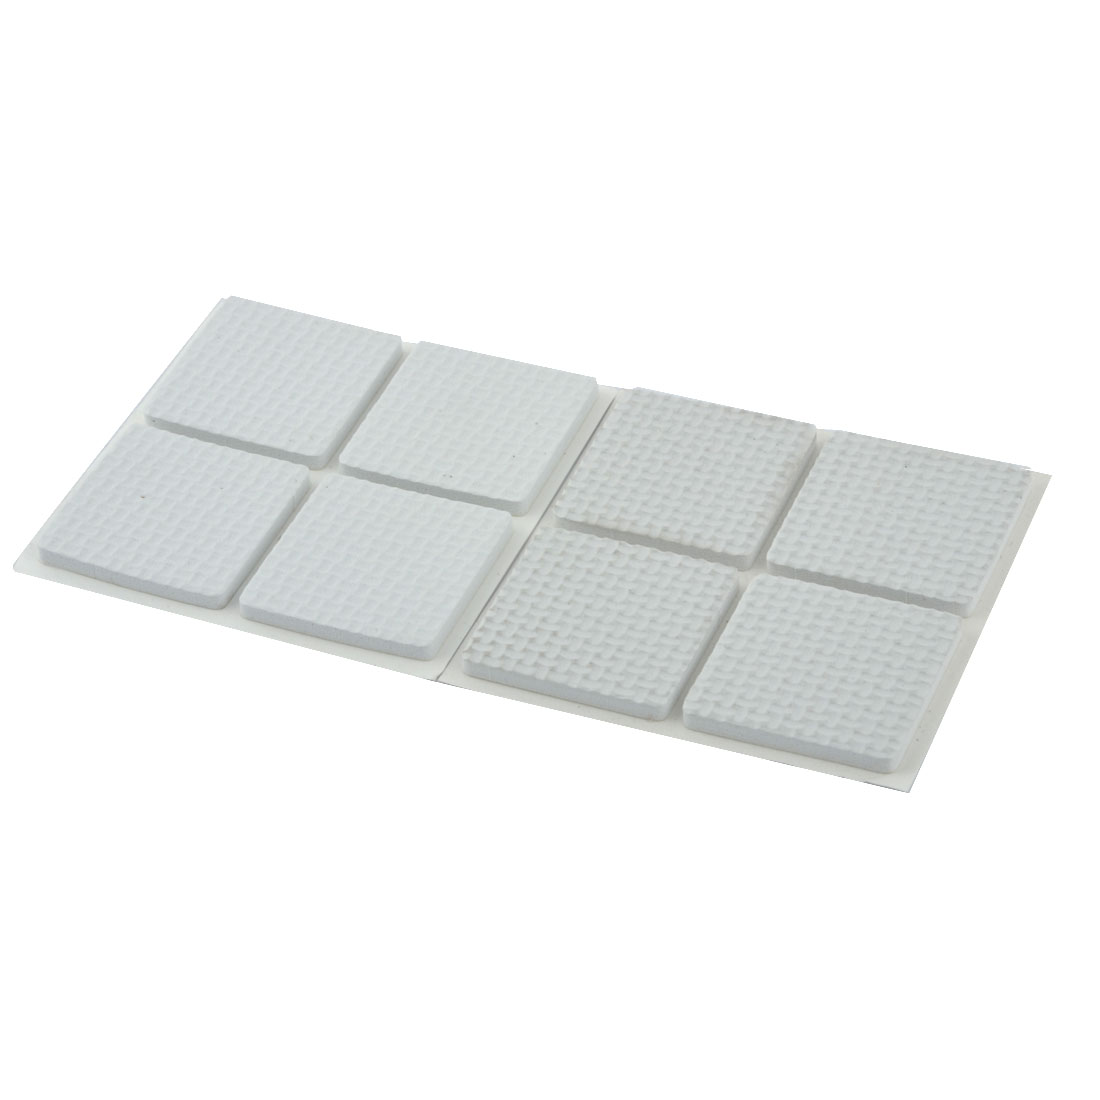 Floor EVA Square Anti Scratch Table Chair Furniture Feet Pads Cover Protector White 38 x 38mm 8pcs